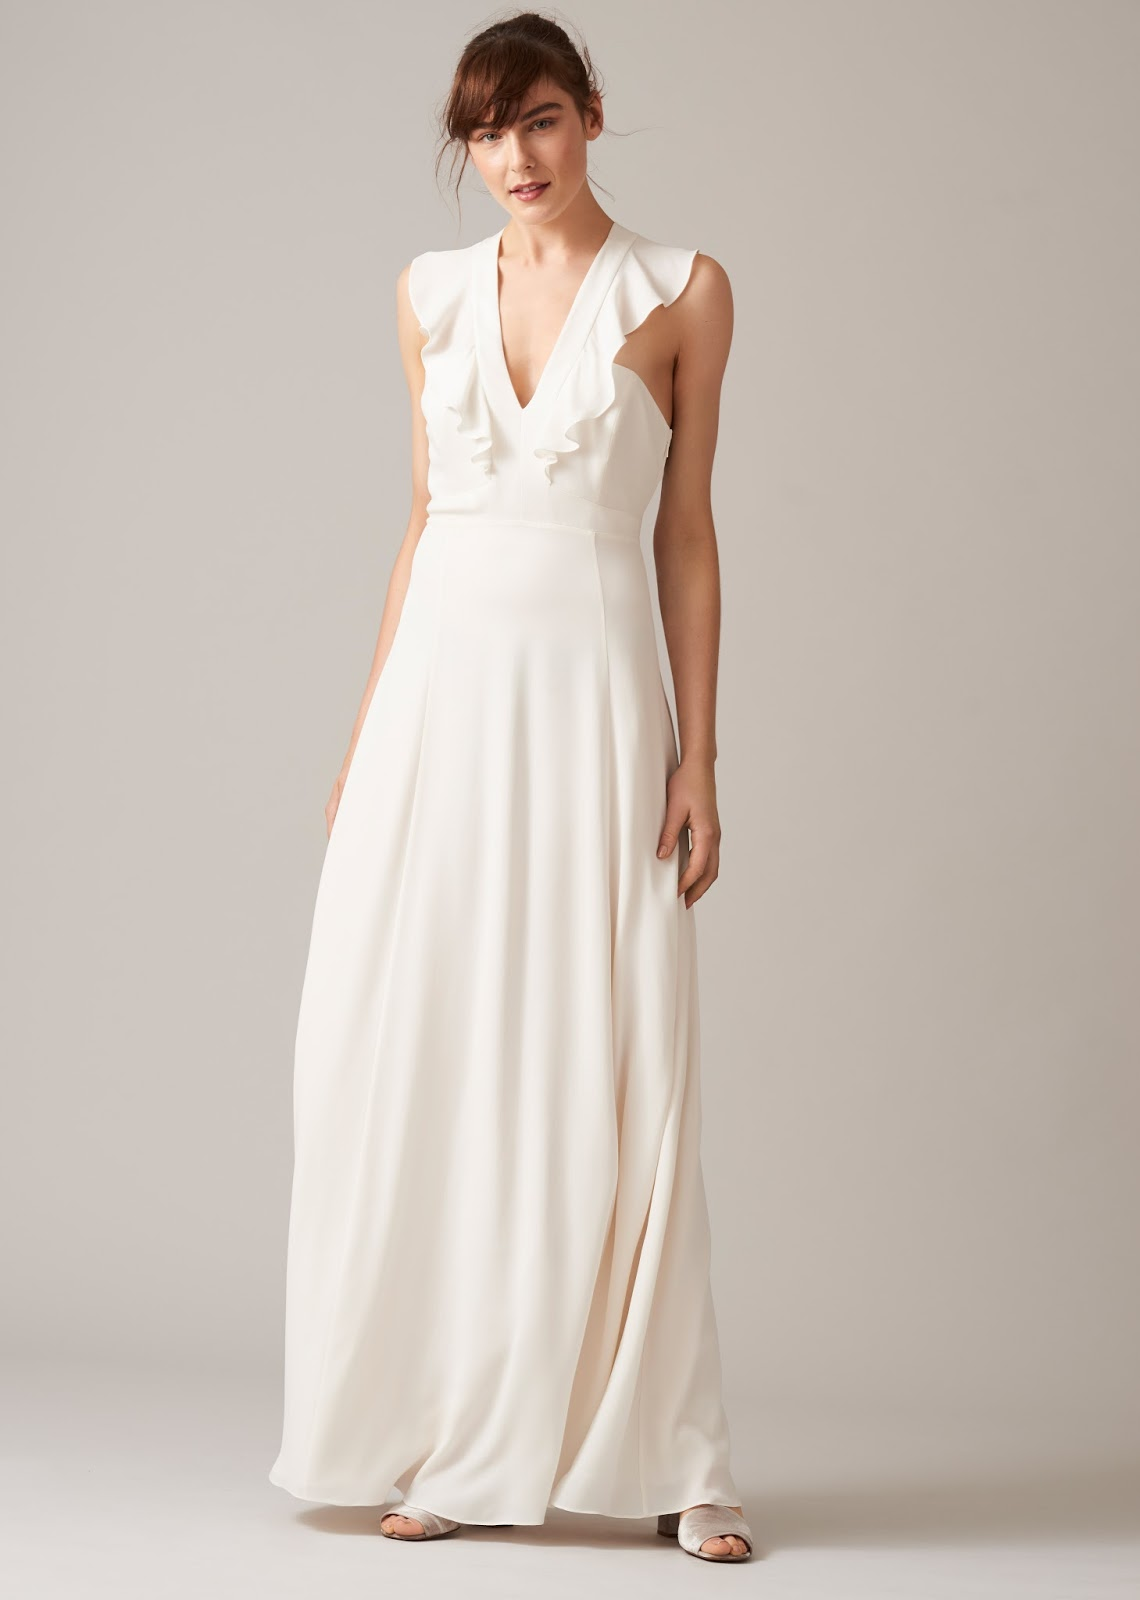 d81cac2d29a Affordable Wedding Gown Brands